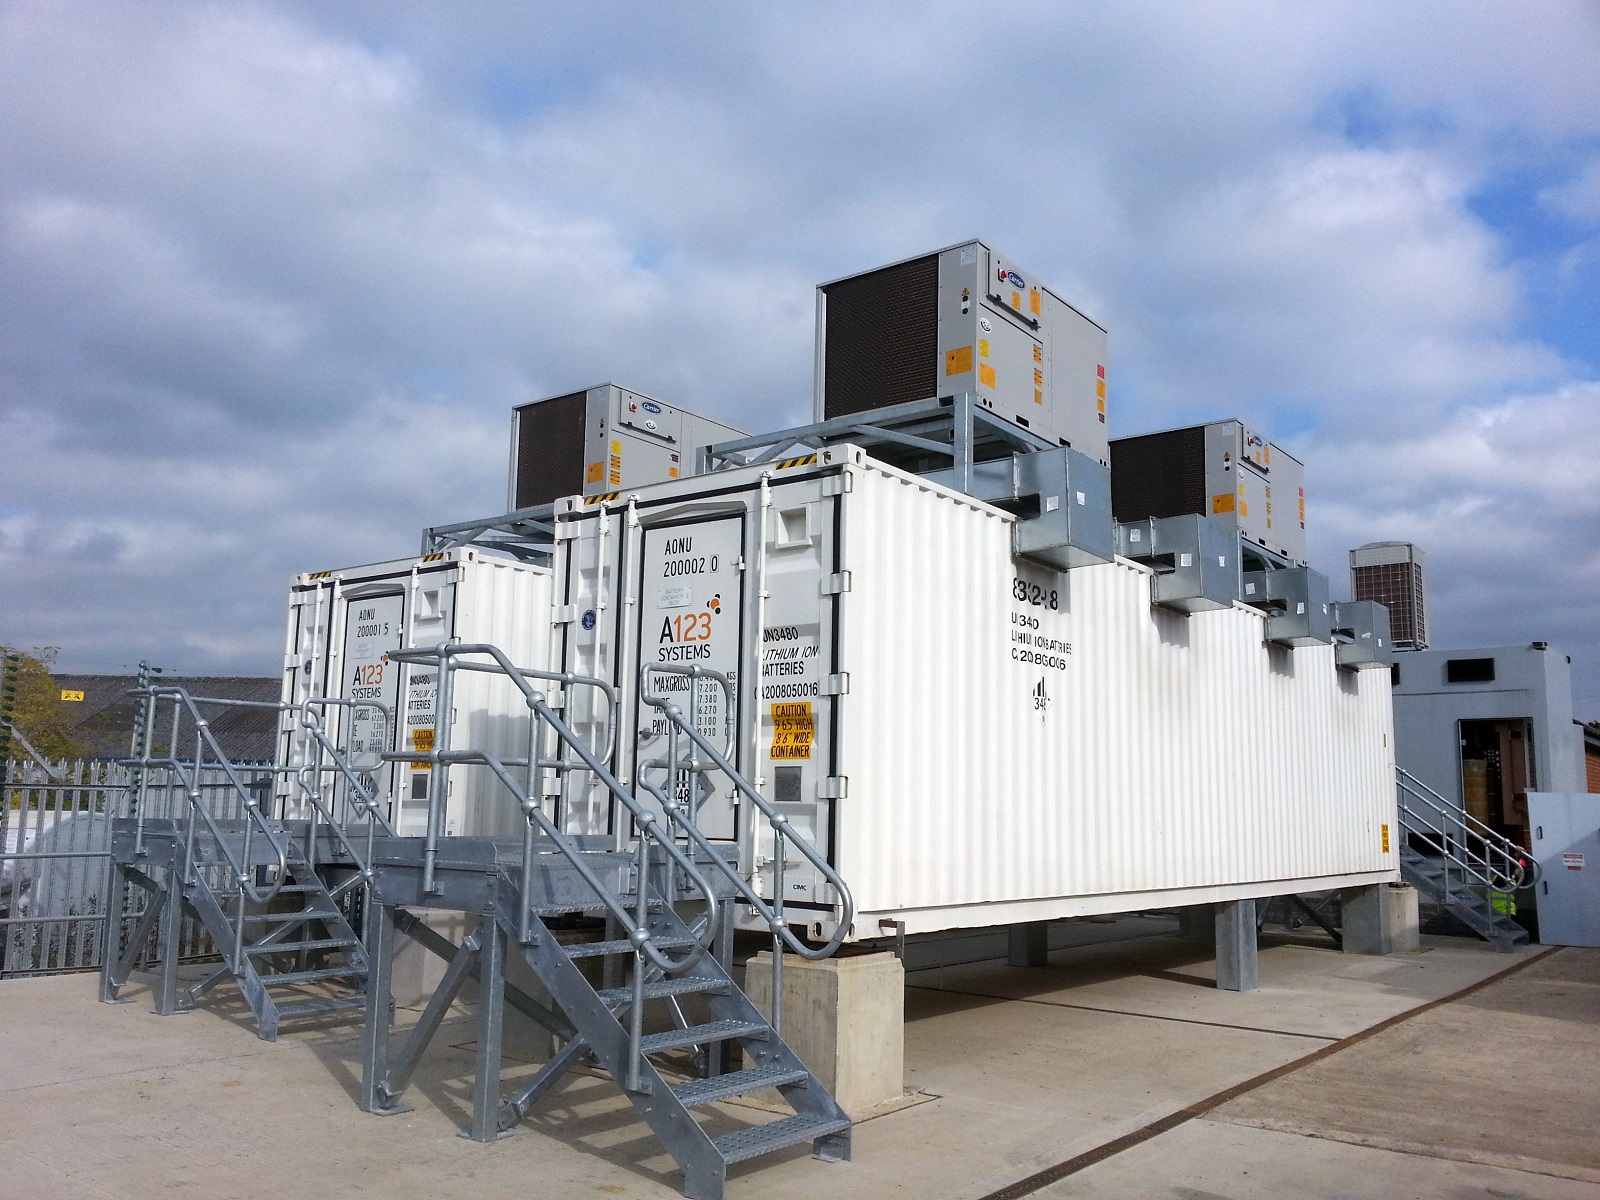 The multiple applications for large-scale energy storage are beginning to be tapped in European countries Credit: NEC Energy Solutions